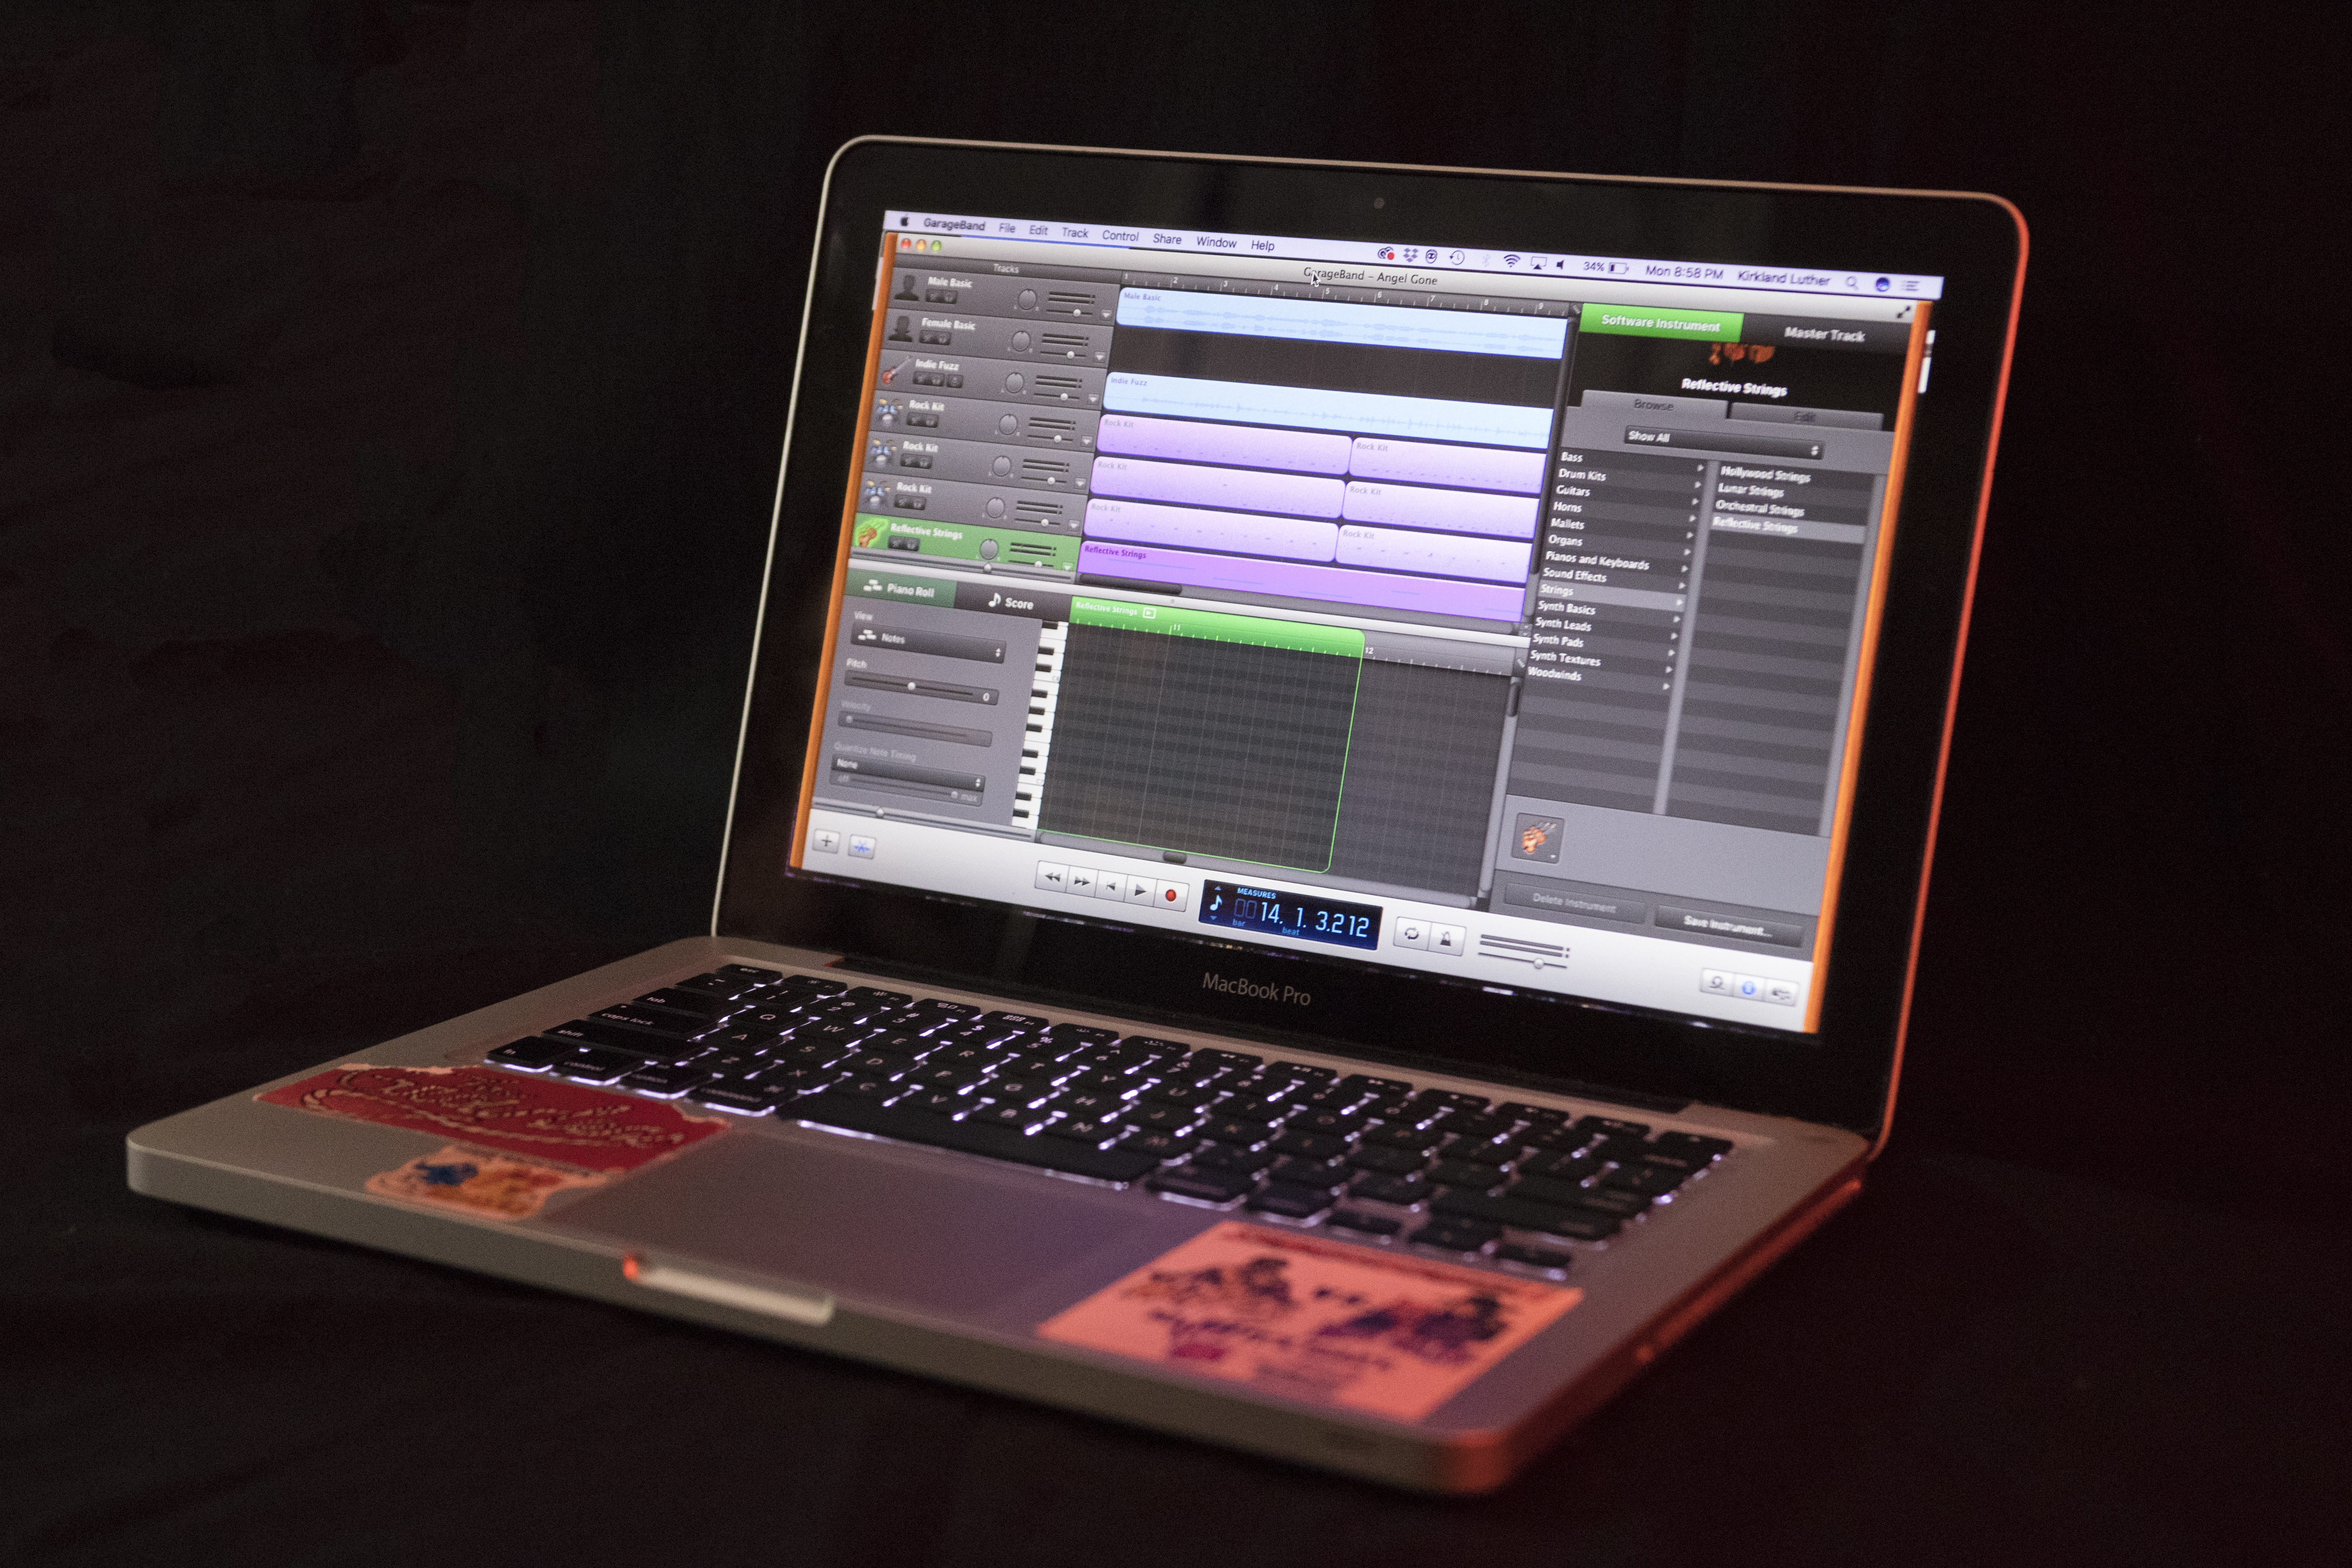 Digital DIY - How bedroom producing is creating new artists   The